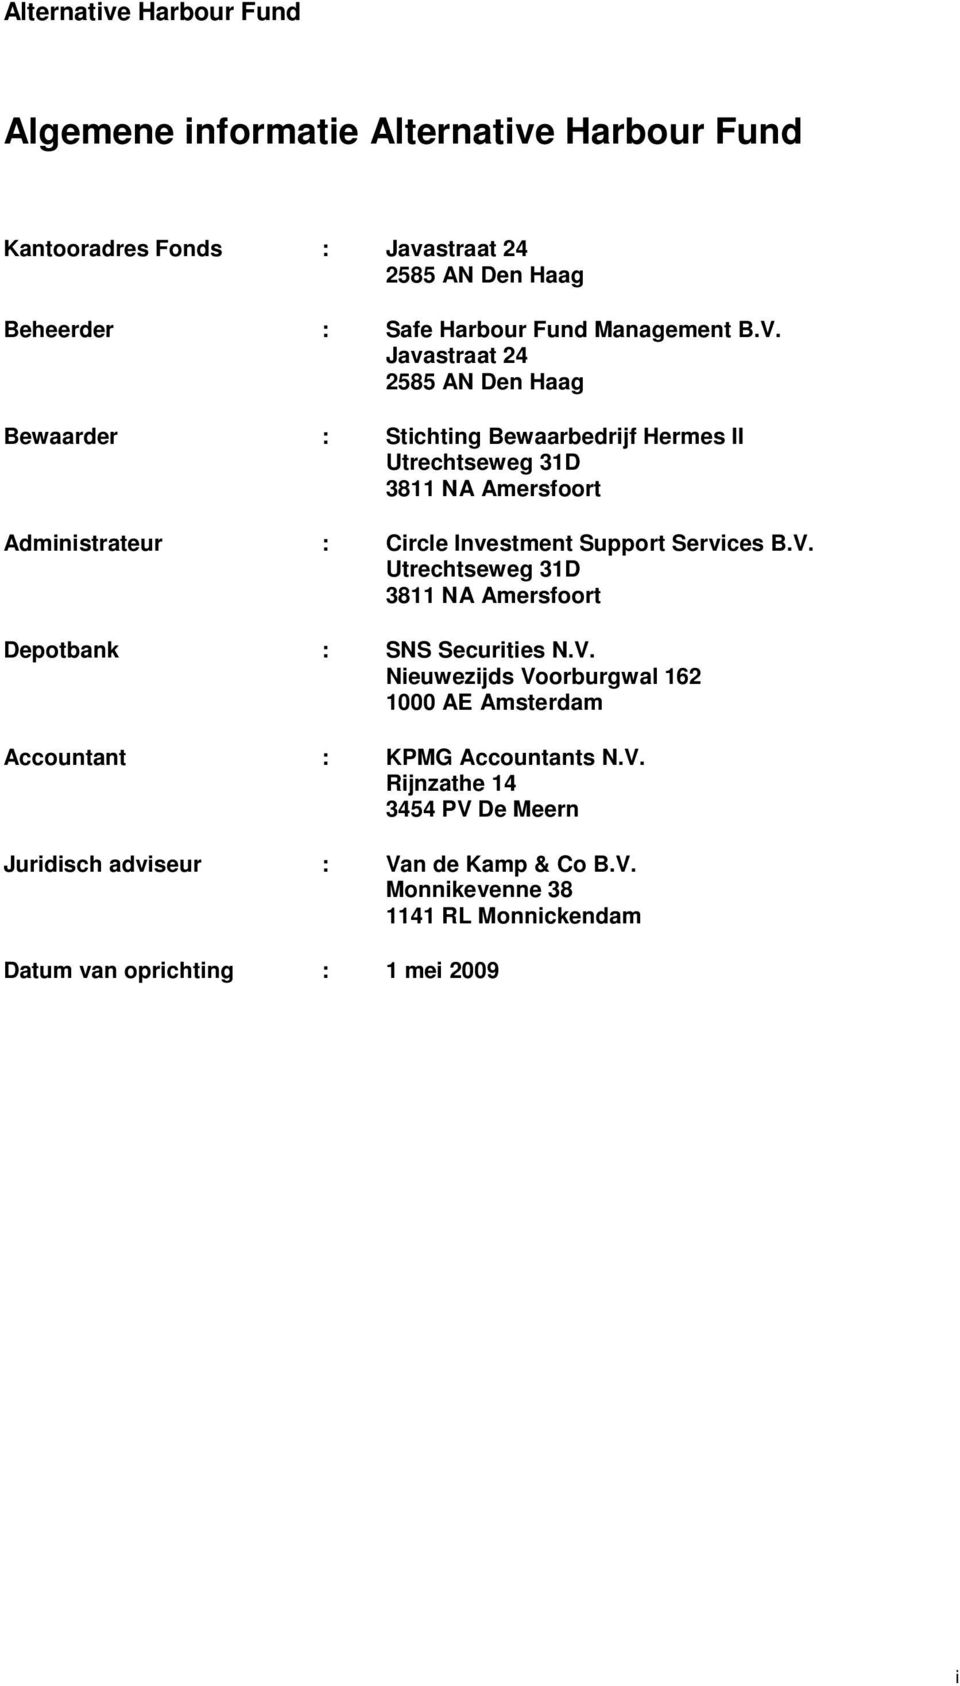 Support Services B.V. Utrechtseweg 31D 3811 NA Amersfoort Depotbank : SNS Securities N.V. Nieuwezijds Voorburgwal 162 1000 AE Amsterdam Accountant : KPMG Accountants N.